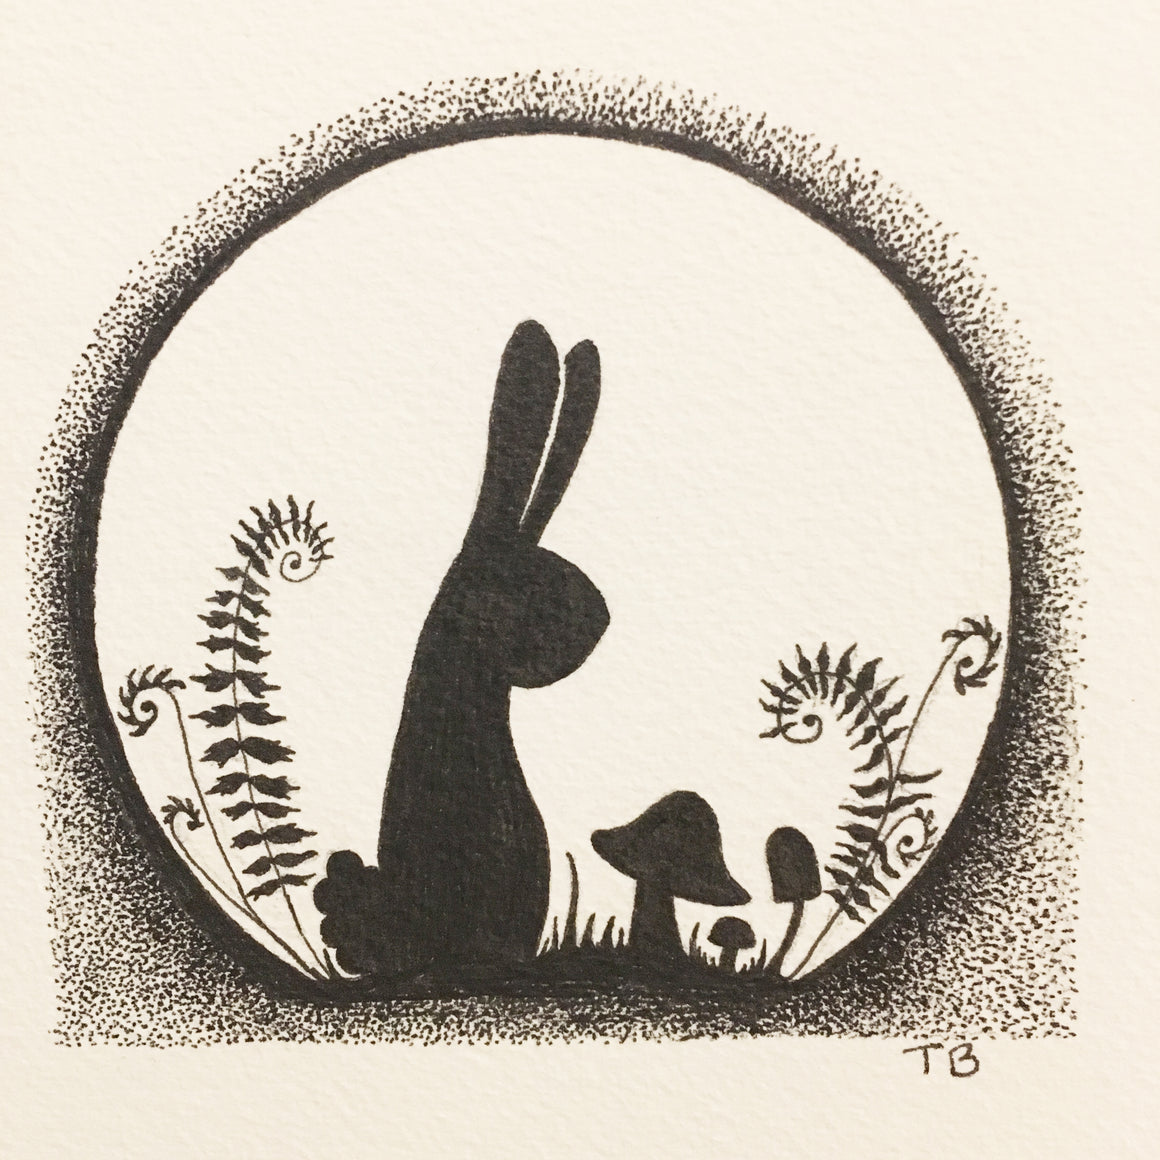 Pen and ink drawing with bunny rabbit, mushrooms and ferns.